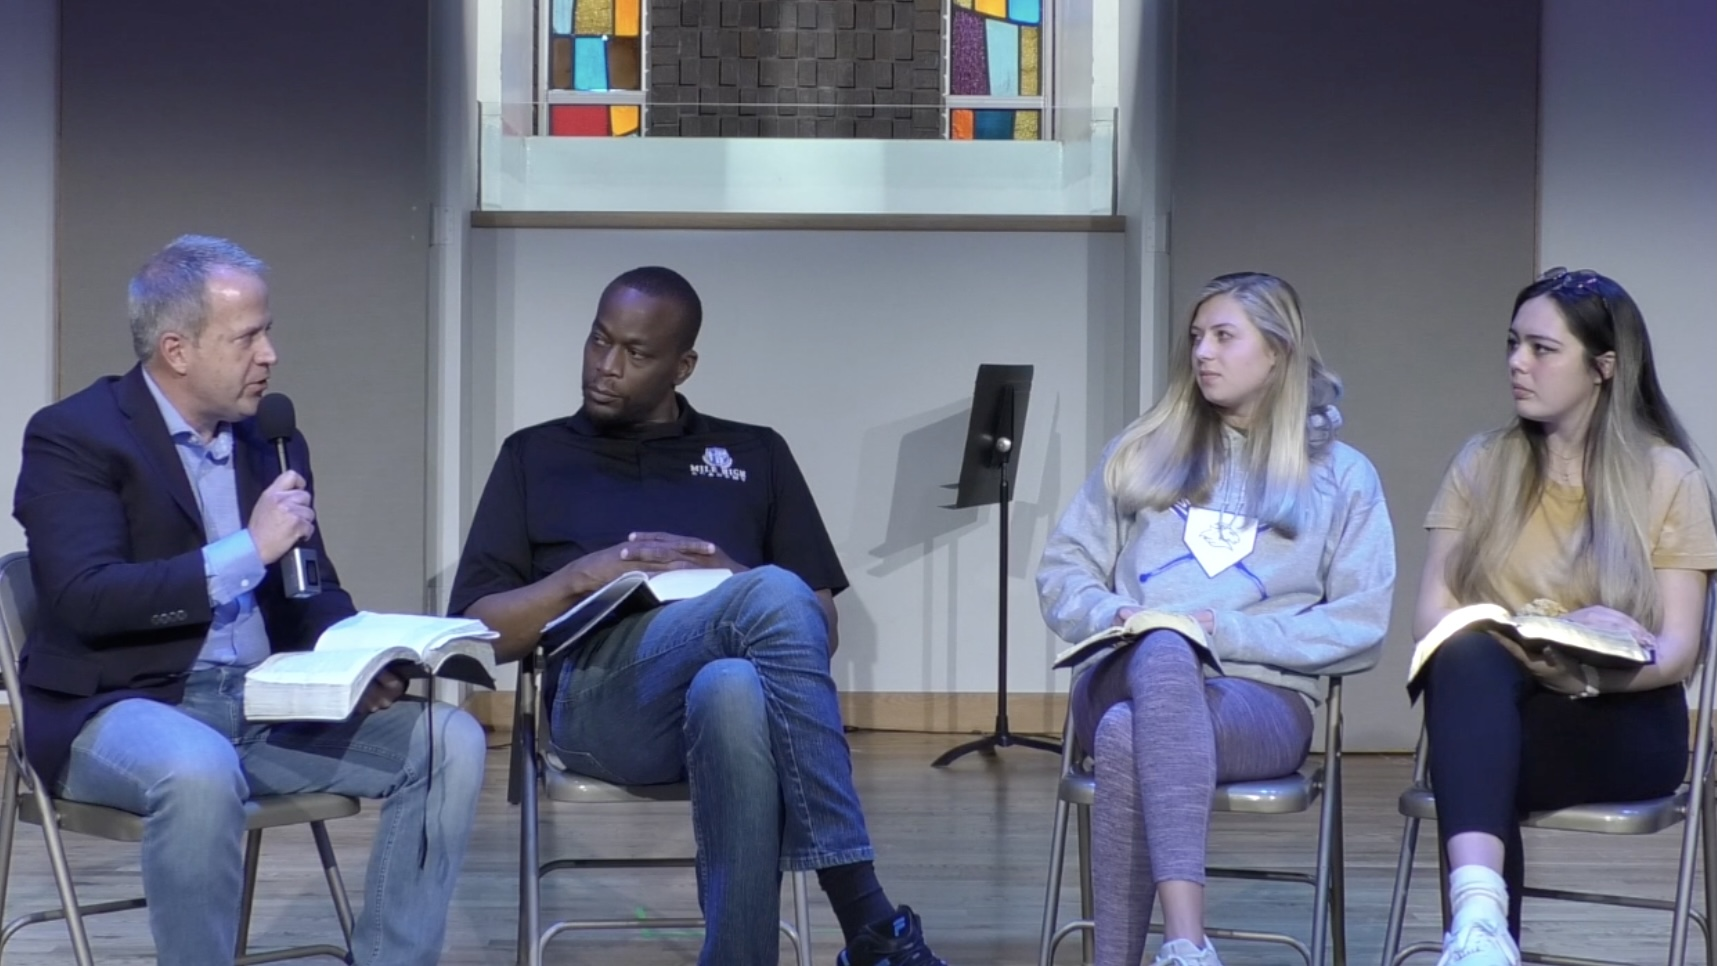 RMC PASTOR FEATURED AT GLOBAL CAMP MEETING